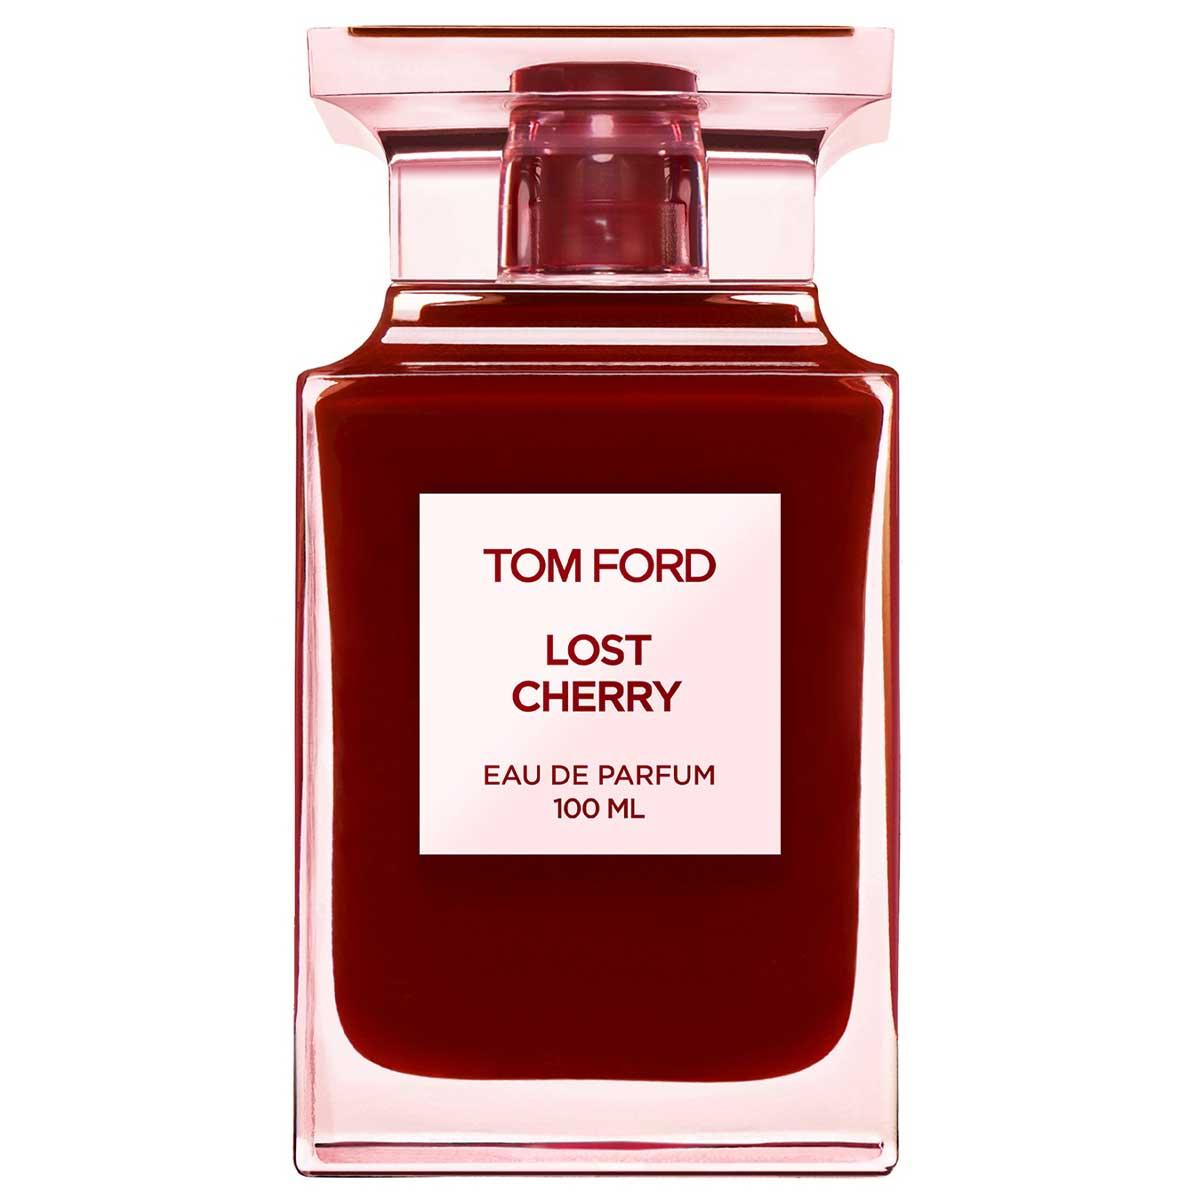 Tom Ford Lost Cherry edp 100ml Tester, USA